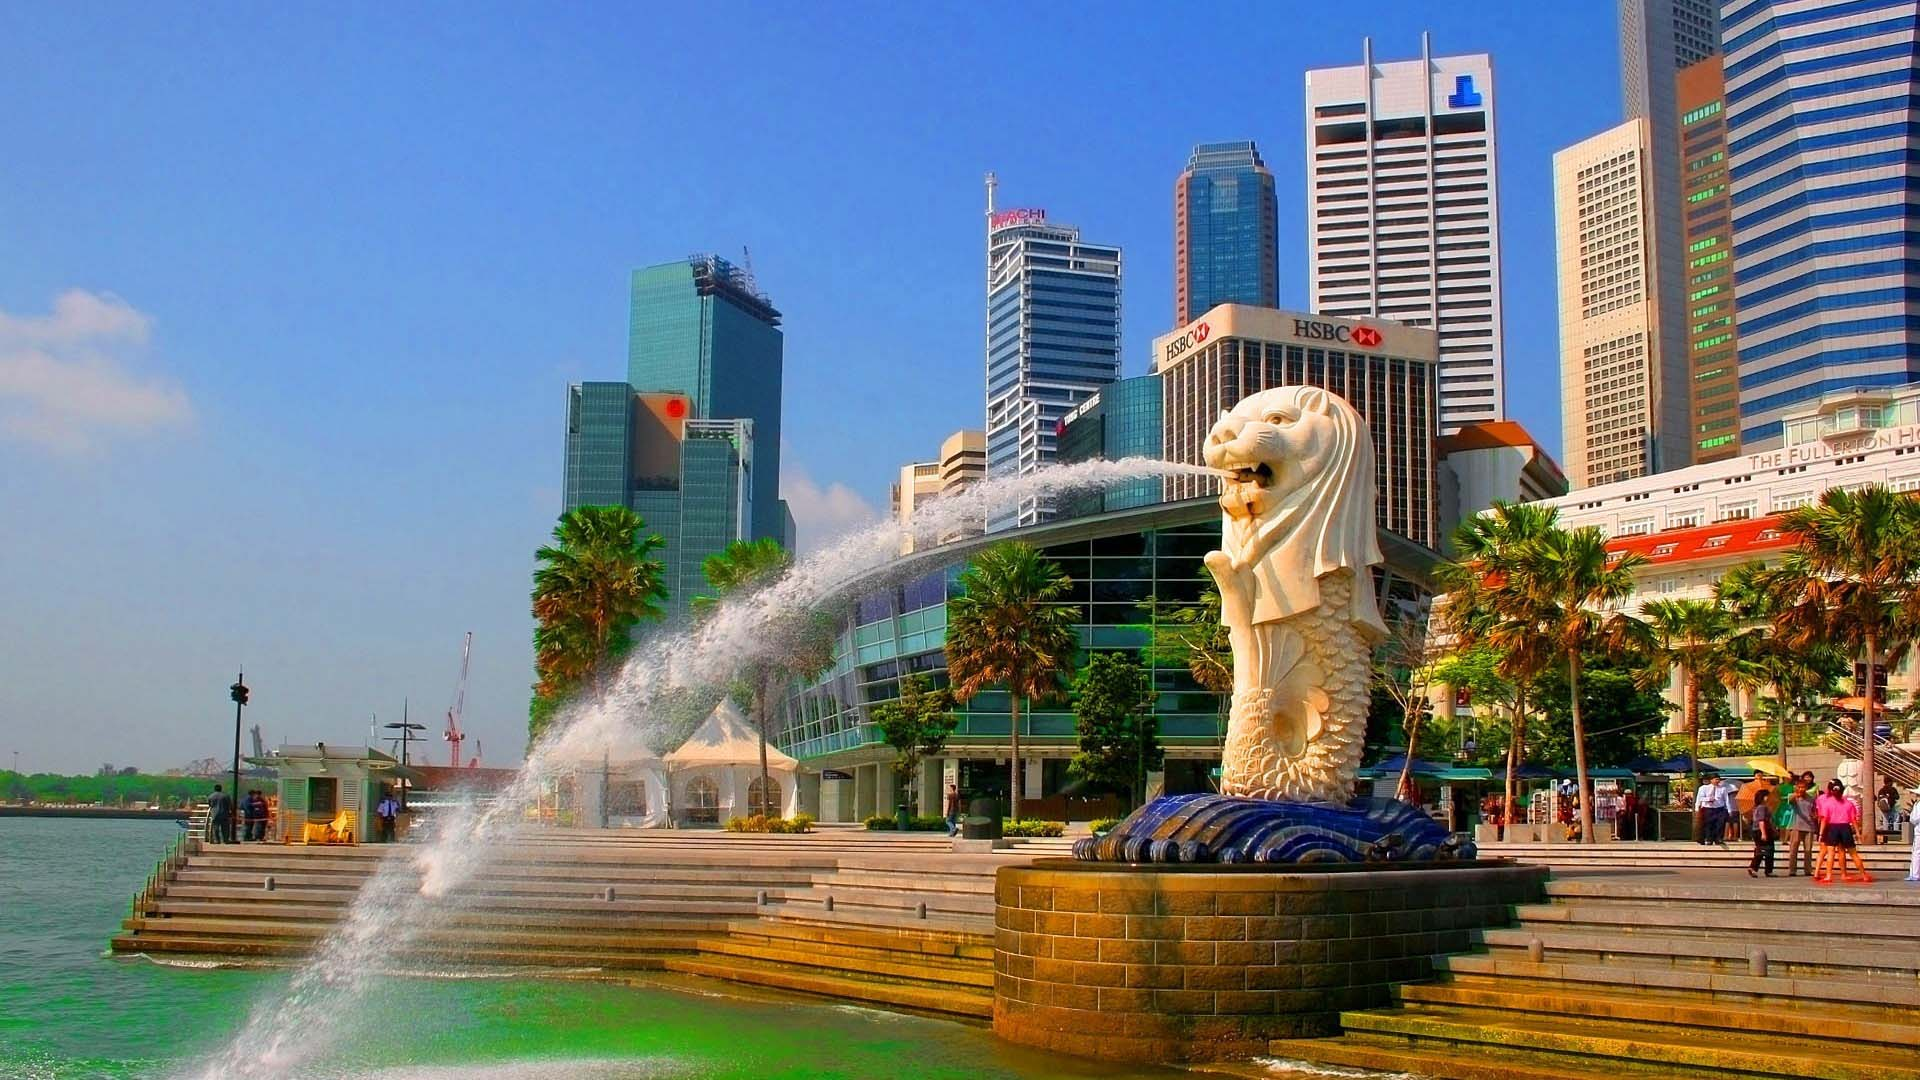 City-Merlion-Park-Singapore-Wallpaper-1920×1080